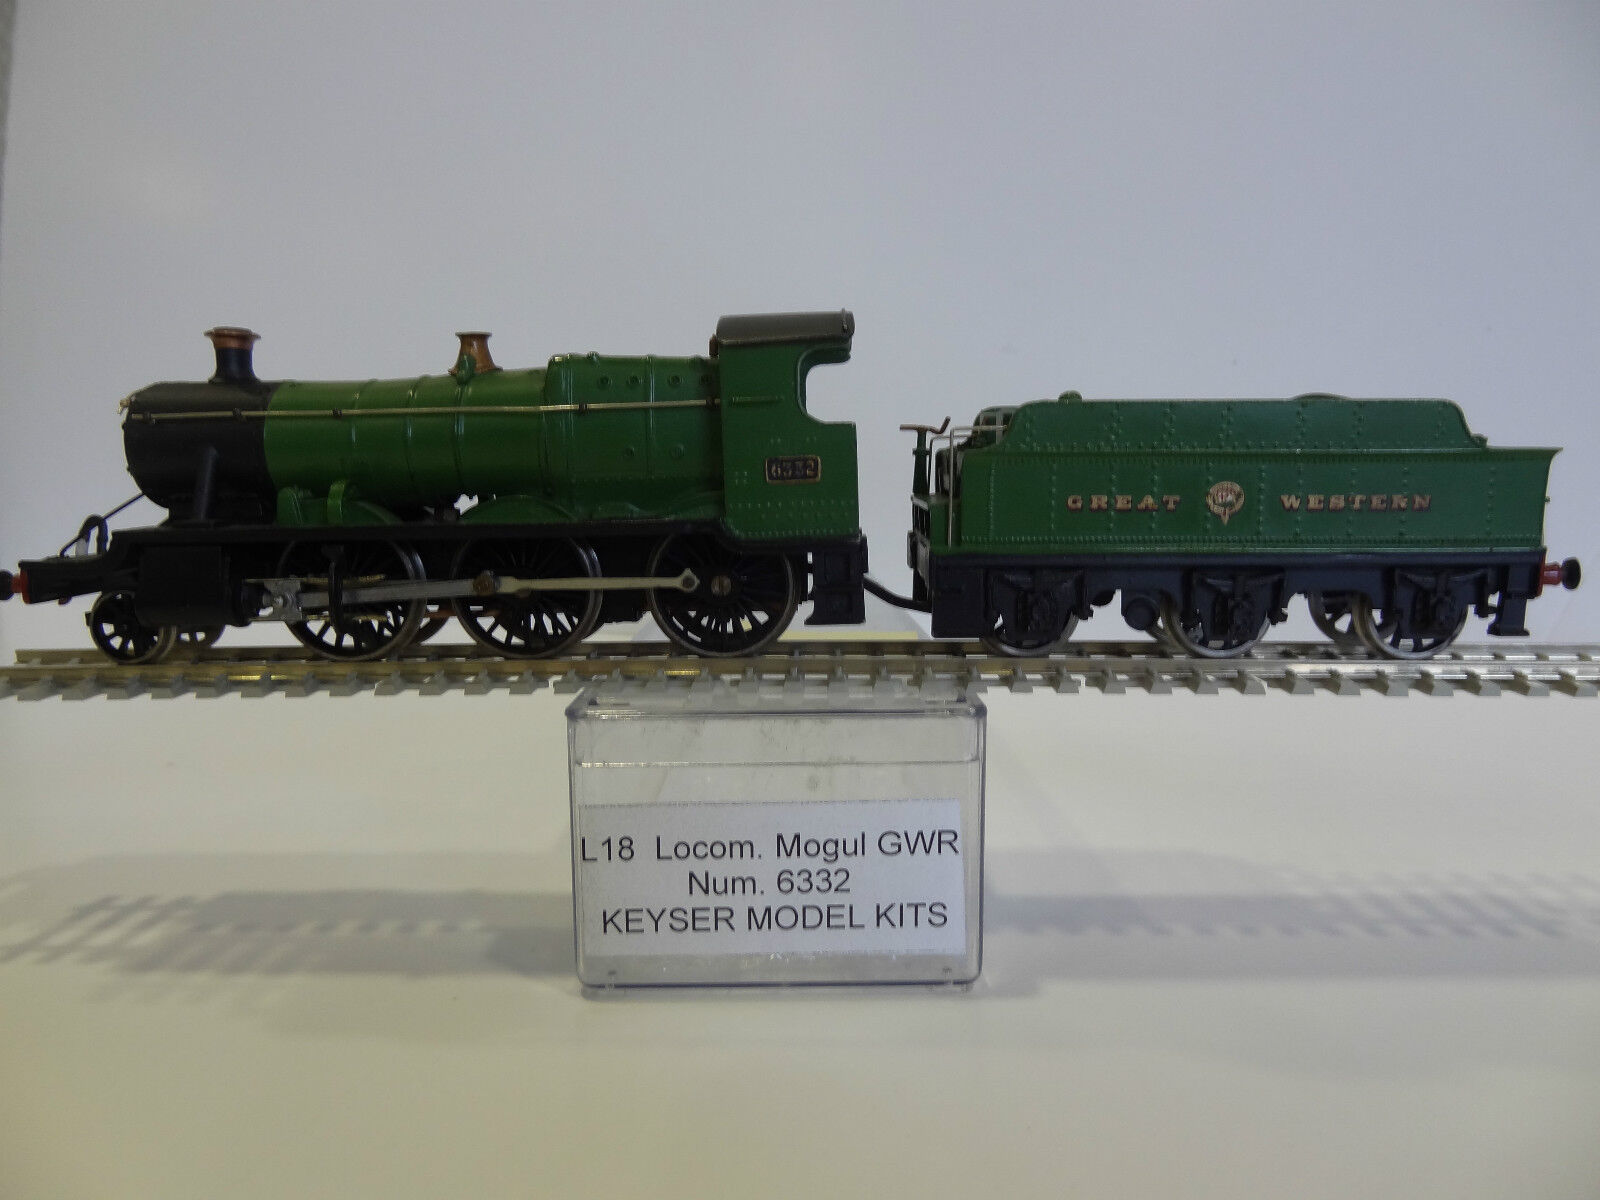 KEYSER MODEL KITS H0 - LOCOMOTIVE STEAM L-18 GWR 2-6-0